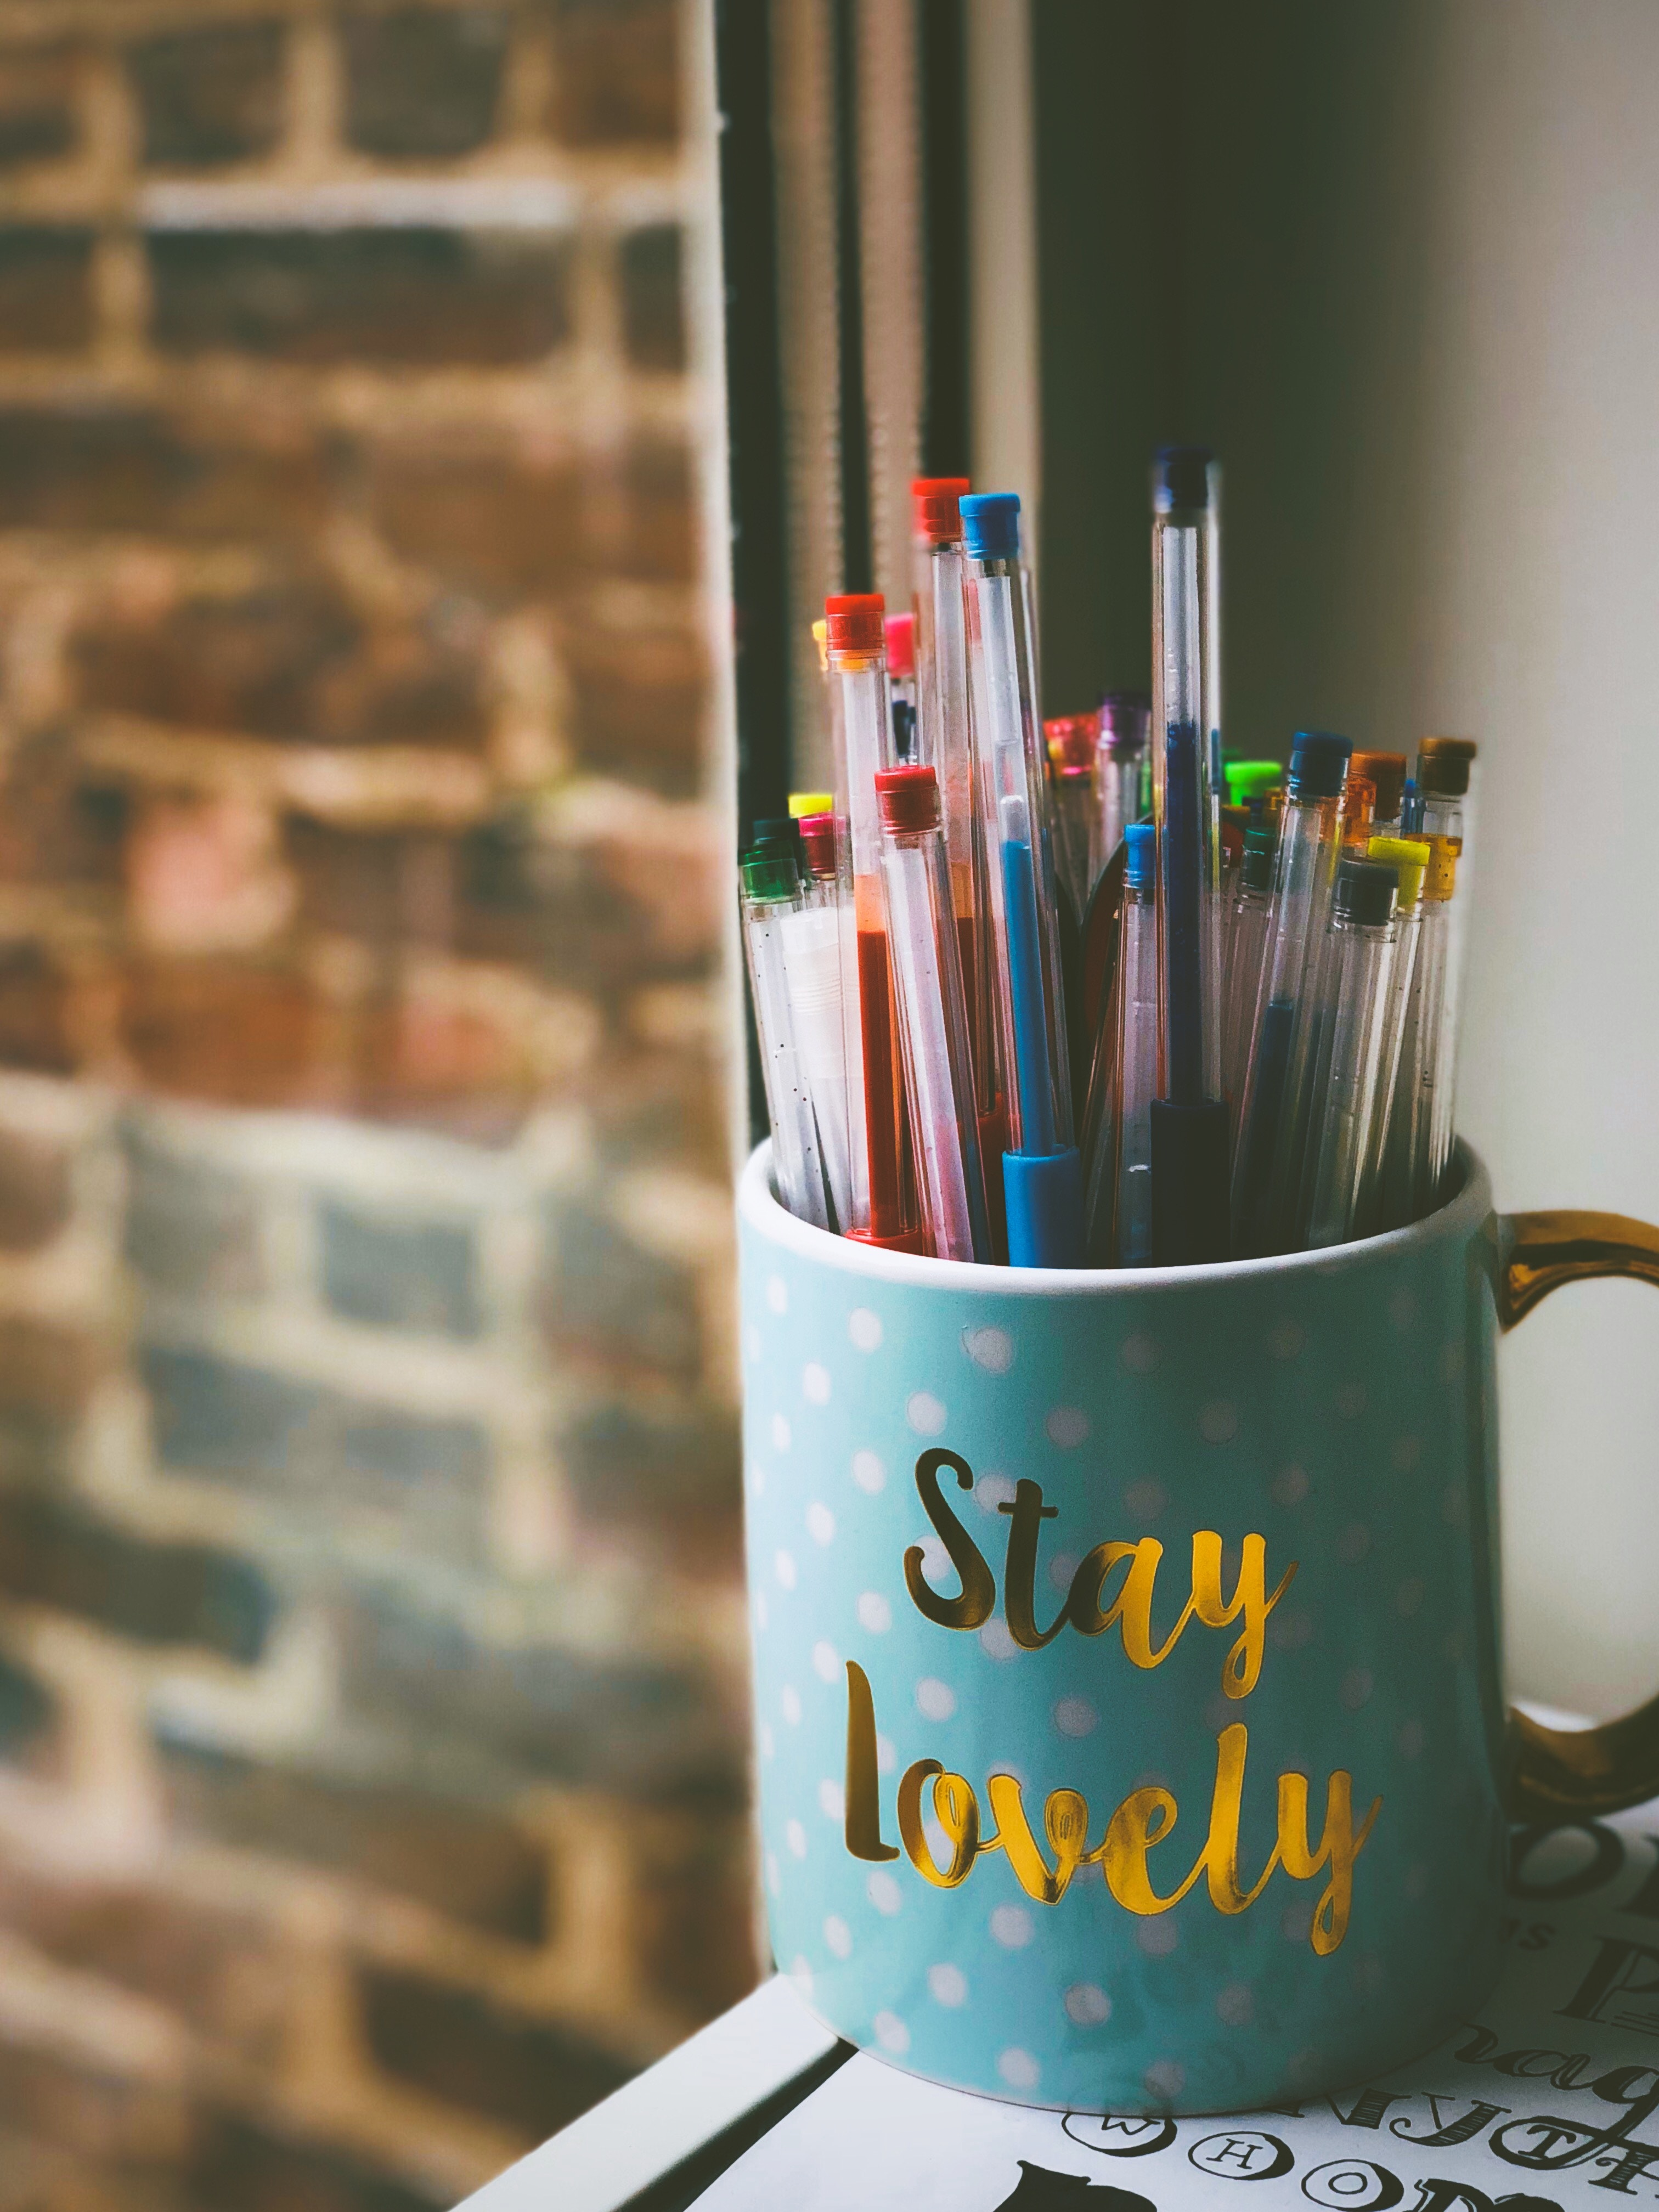 blue mug used as a colourful pen holder. 3 habits you can do at the office to stay productive all day. niagara region based app and web development agency shares how to stay inspired at the office.